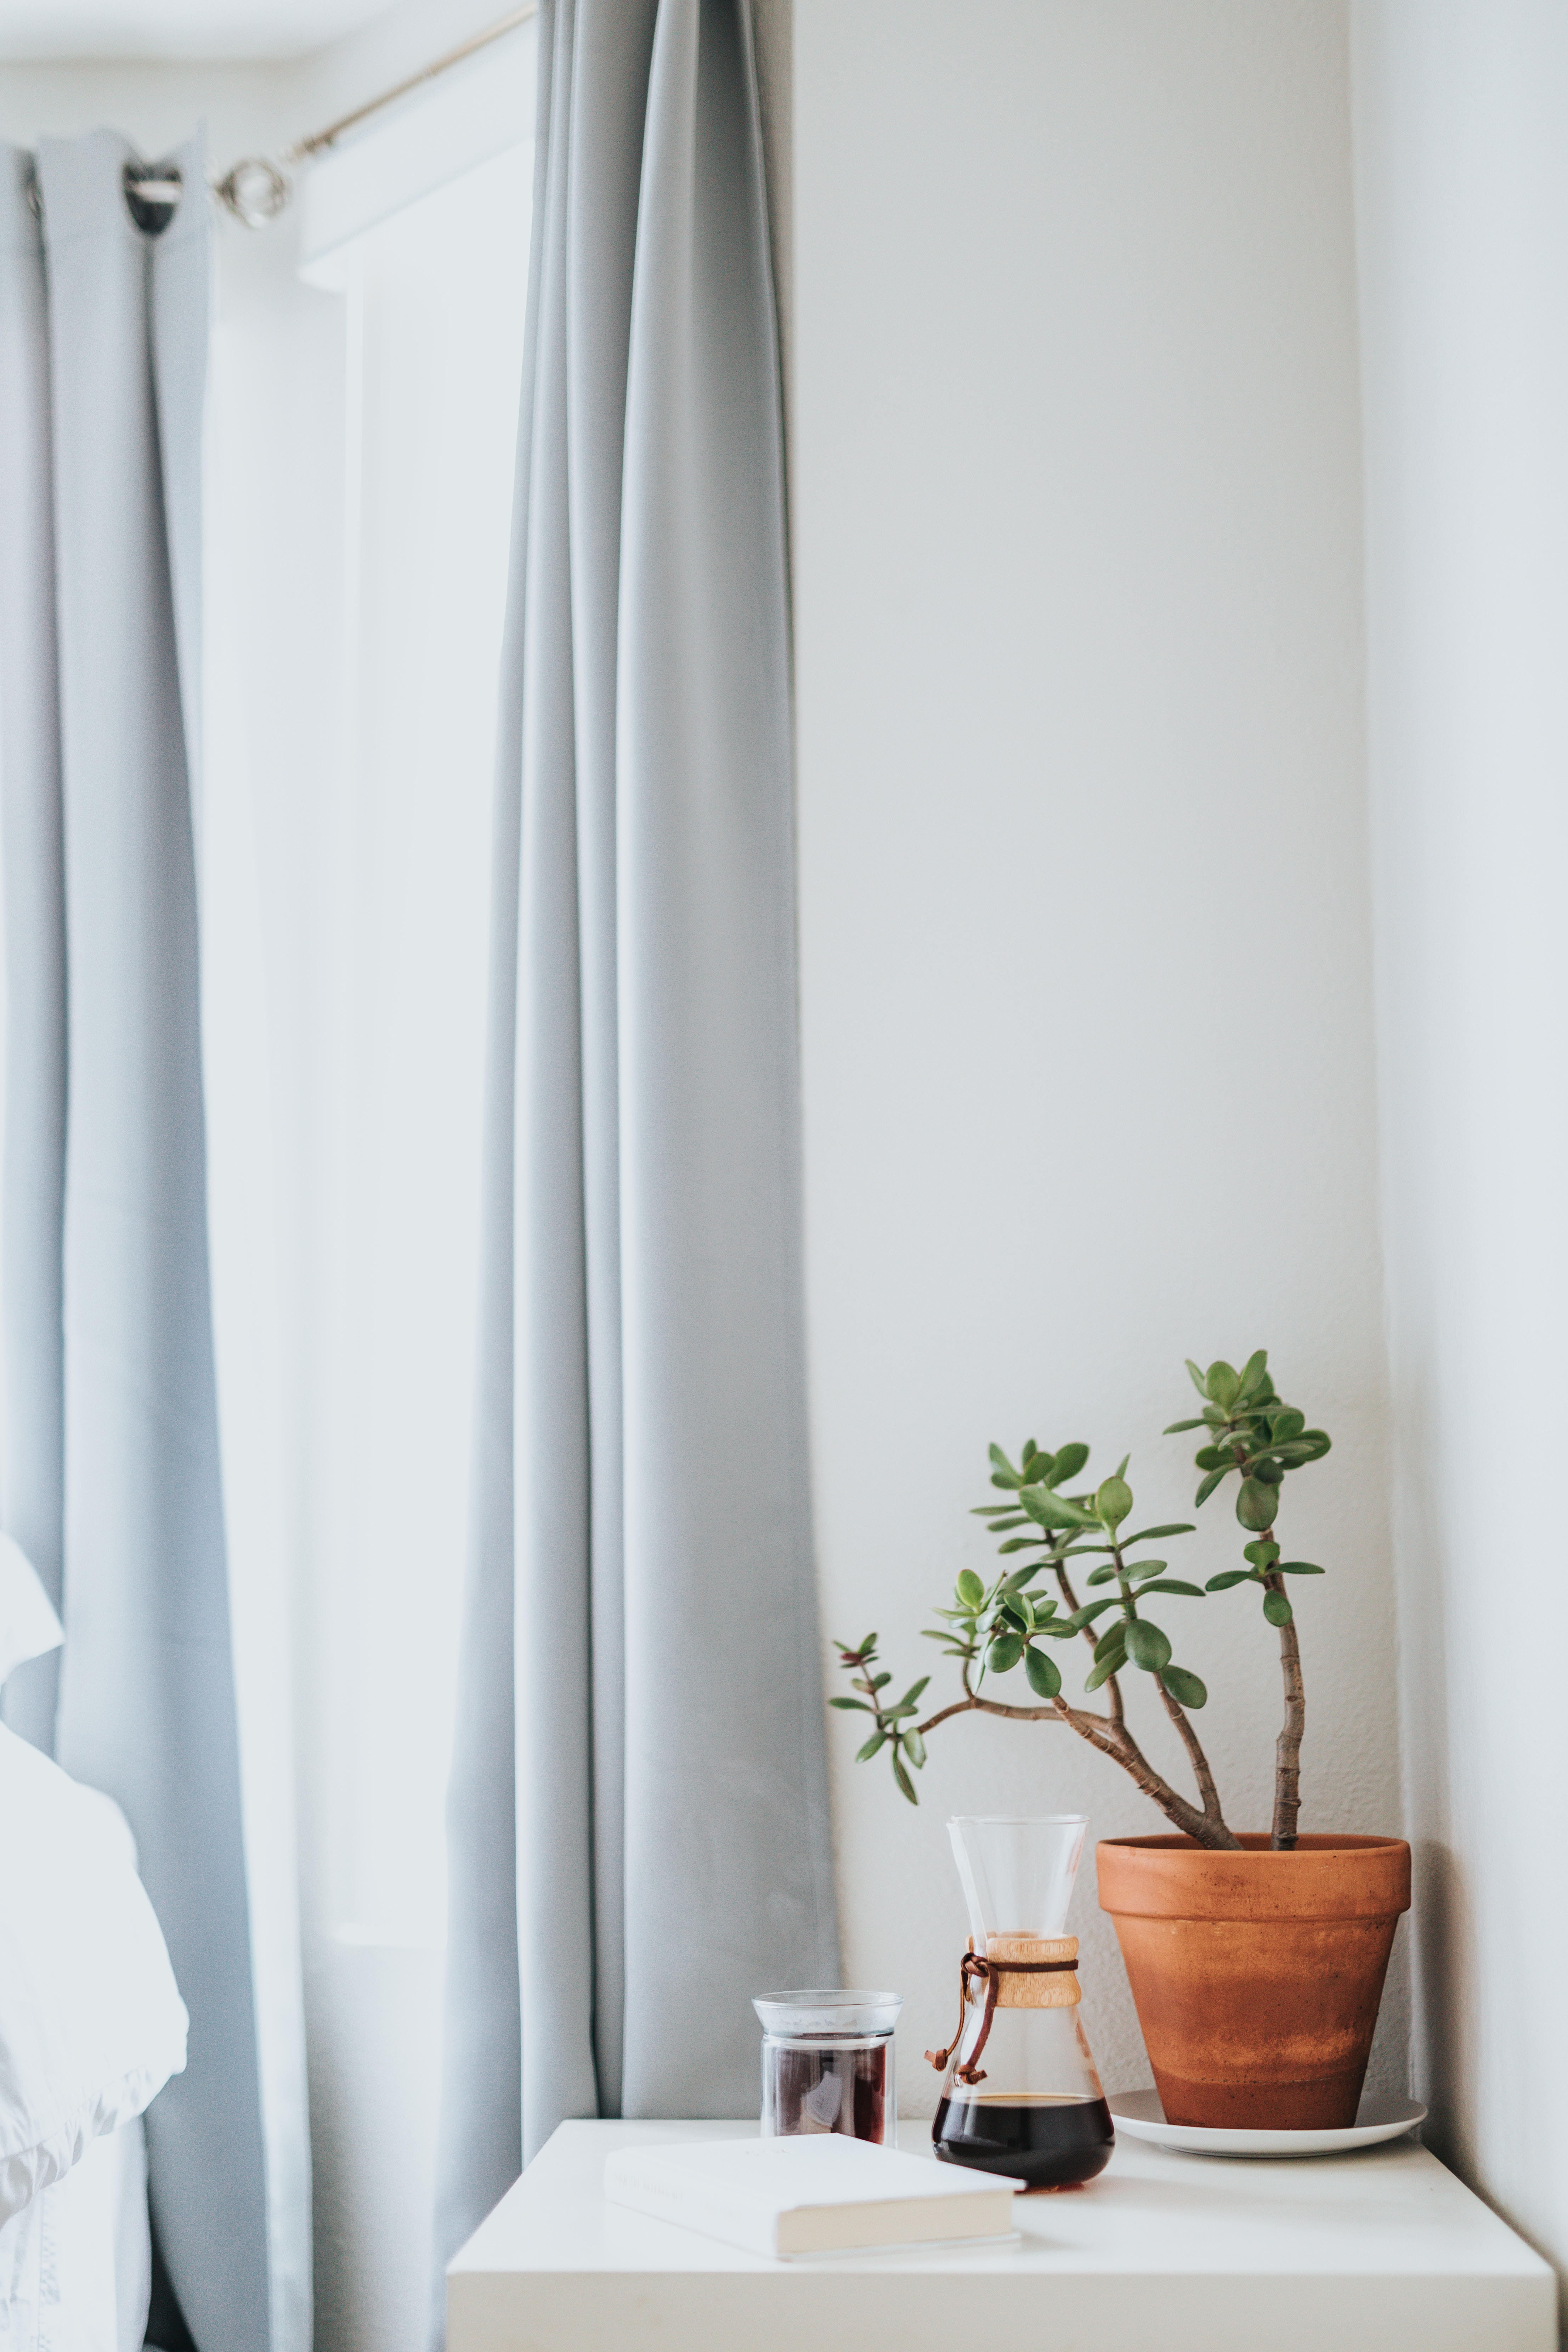 These Personal Touches Will Make Your Rental Home Feel Like Your Own